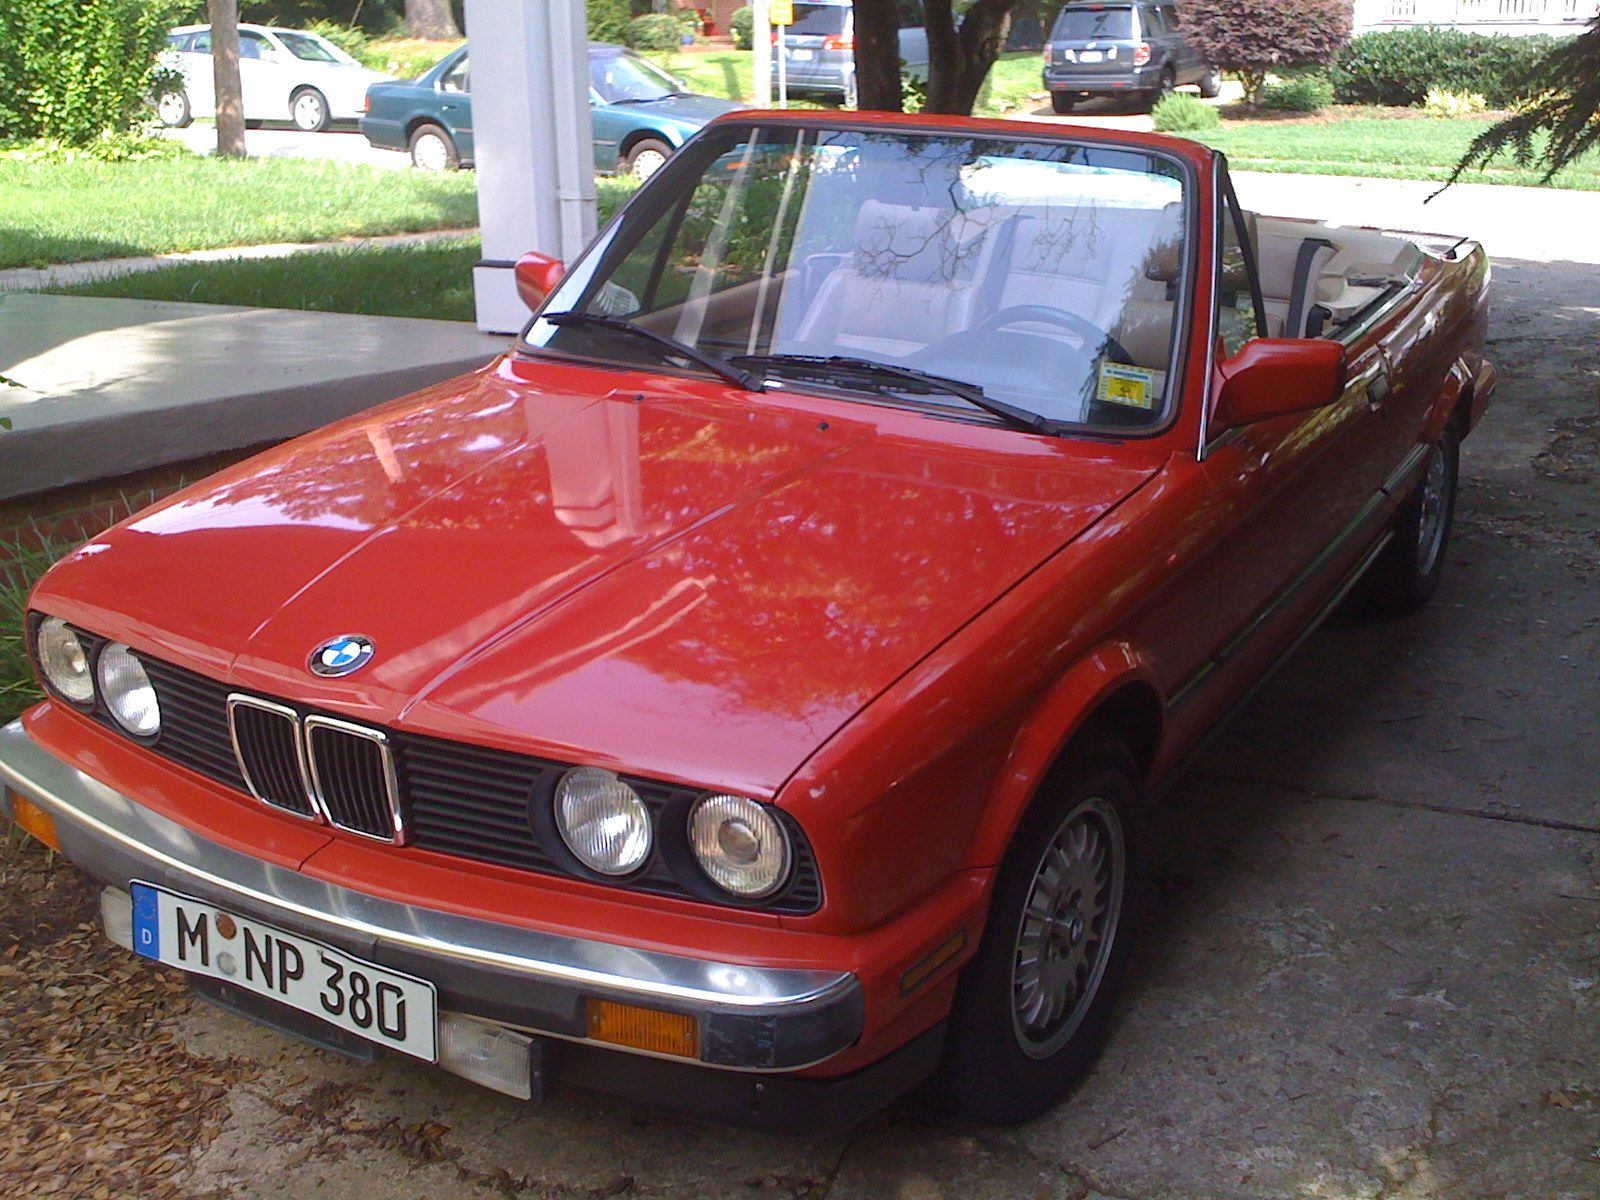 1989 BMW e30 325i convertible Zinnoberrot red  Cars  Pinterest